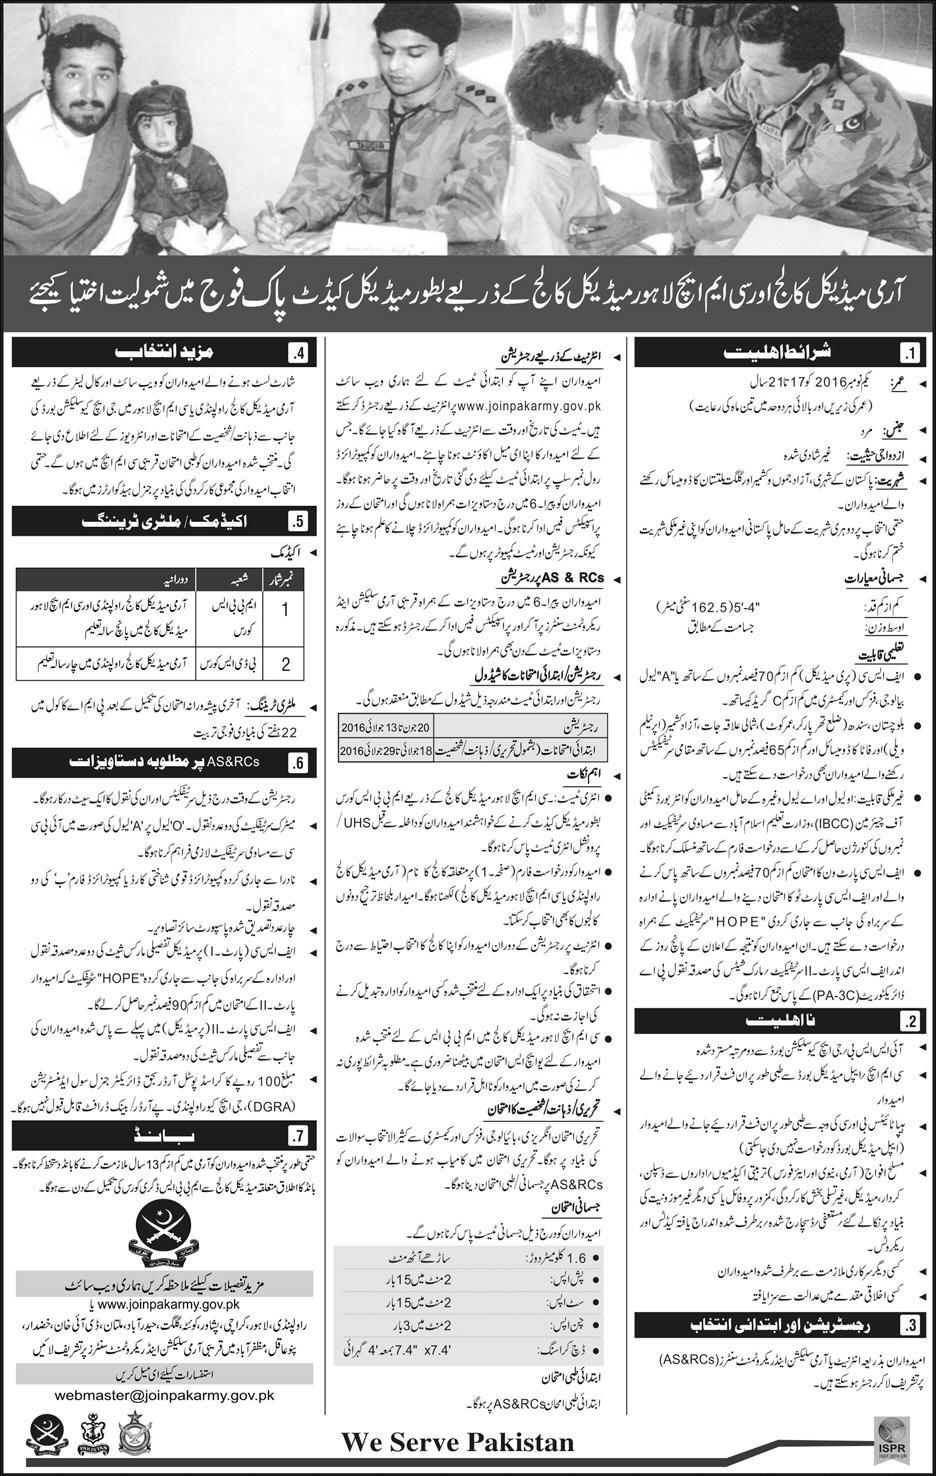 Medical Cadet Jobs In Pakistan Army 2016 Online Registration Form